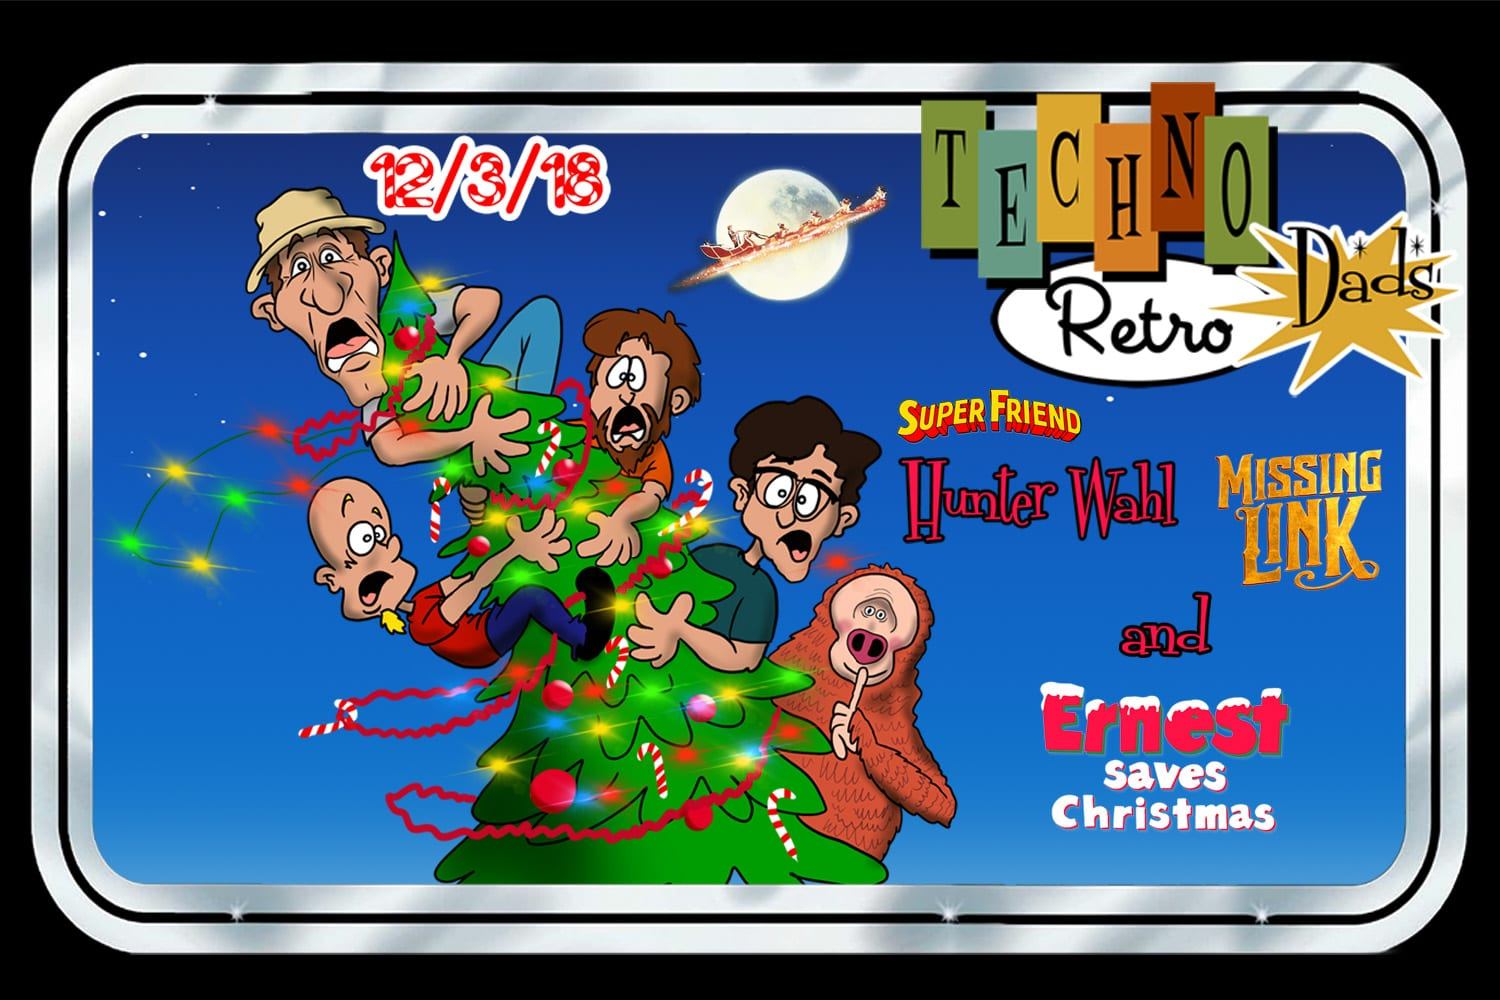 Ernest Christmas.Technoretro Dads Ernest Saves Christmas From Laika S